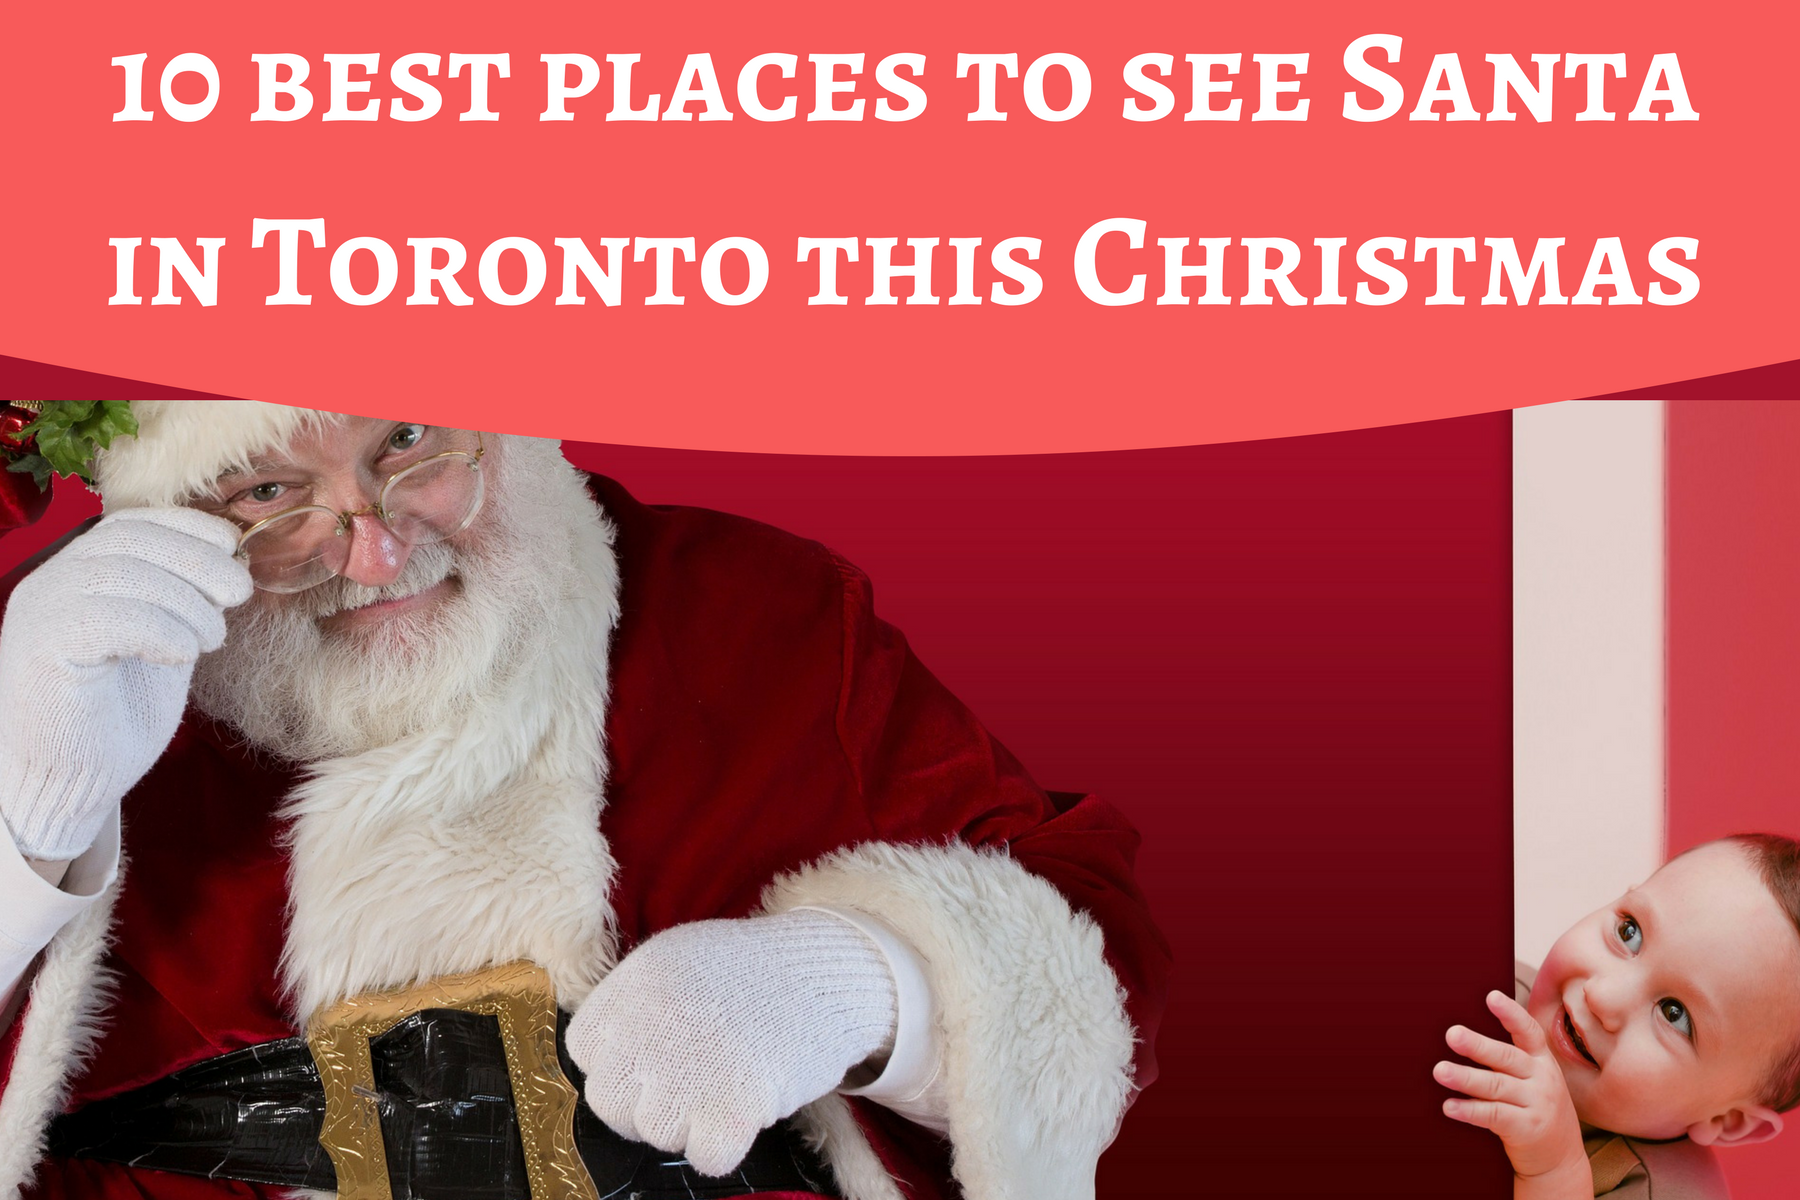 10 Best Places To See Santa In Toronto This Christmas